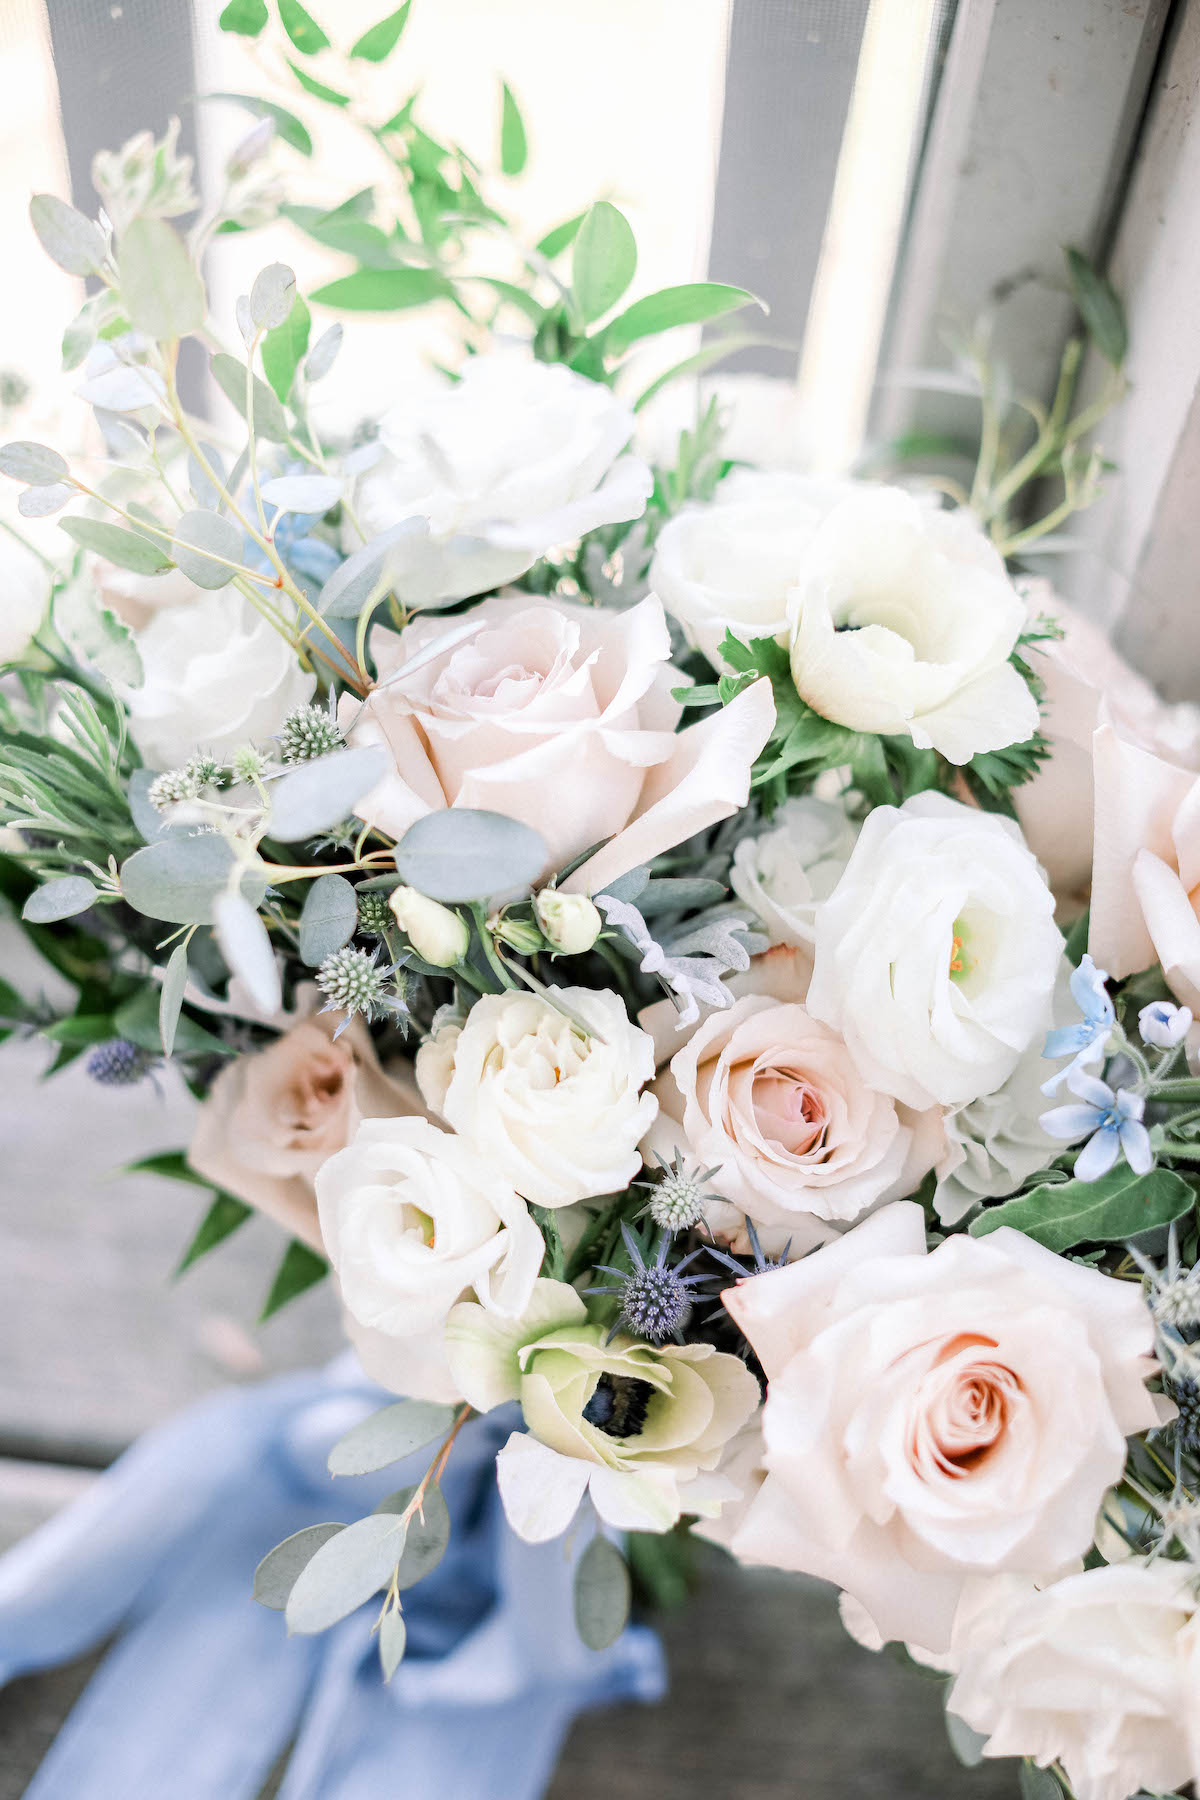 Light and airy bridal bouquet with blush and pale blue